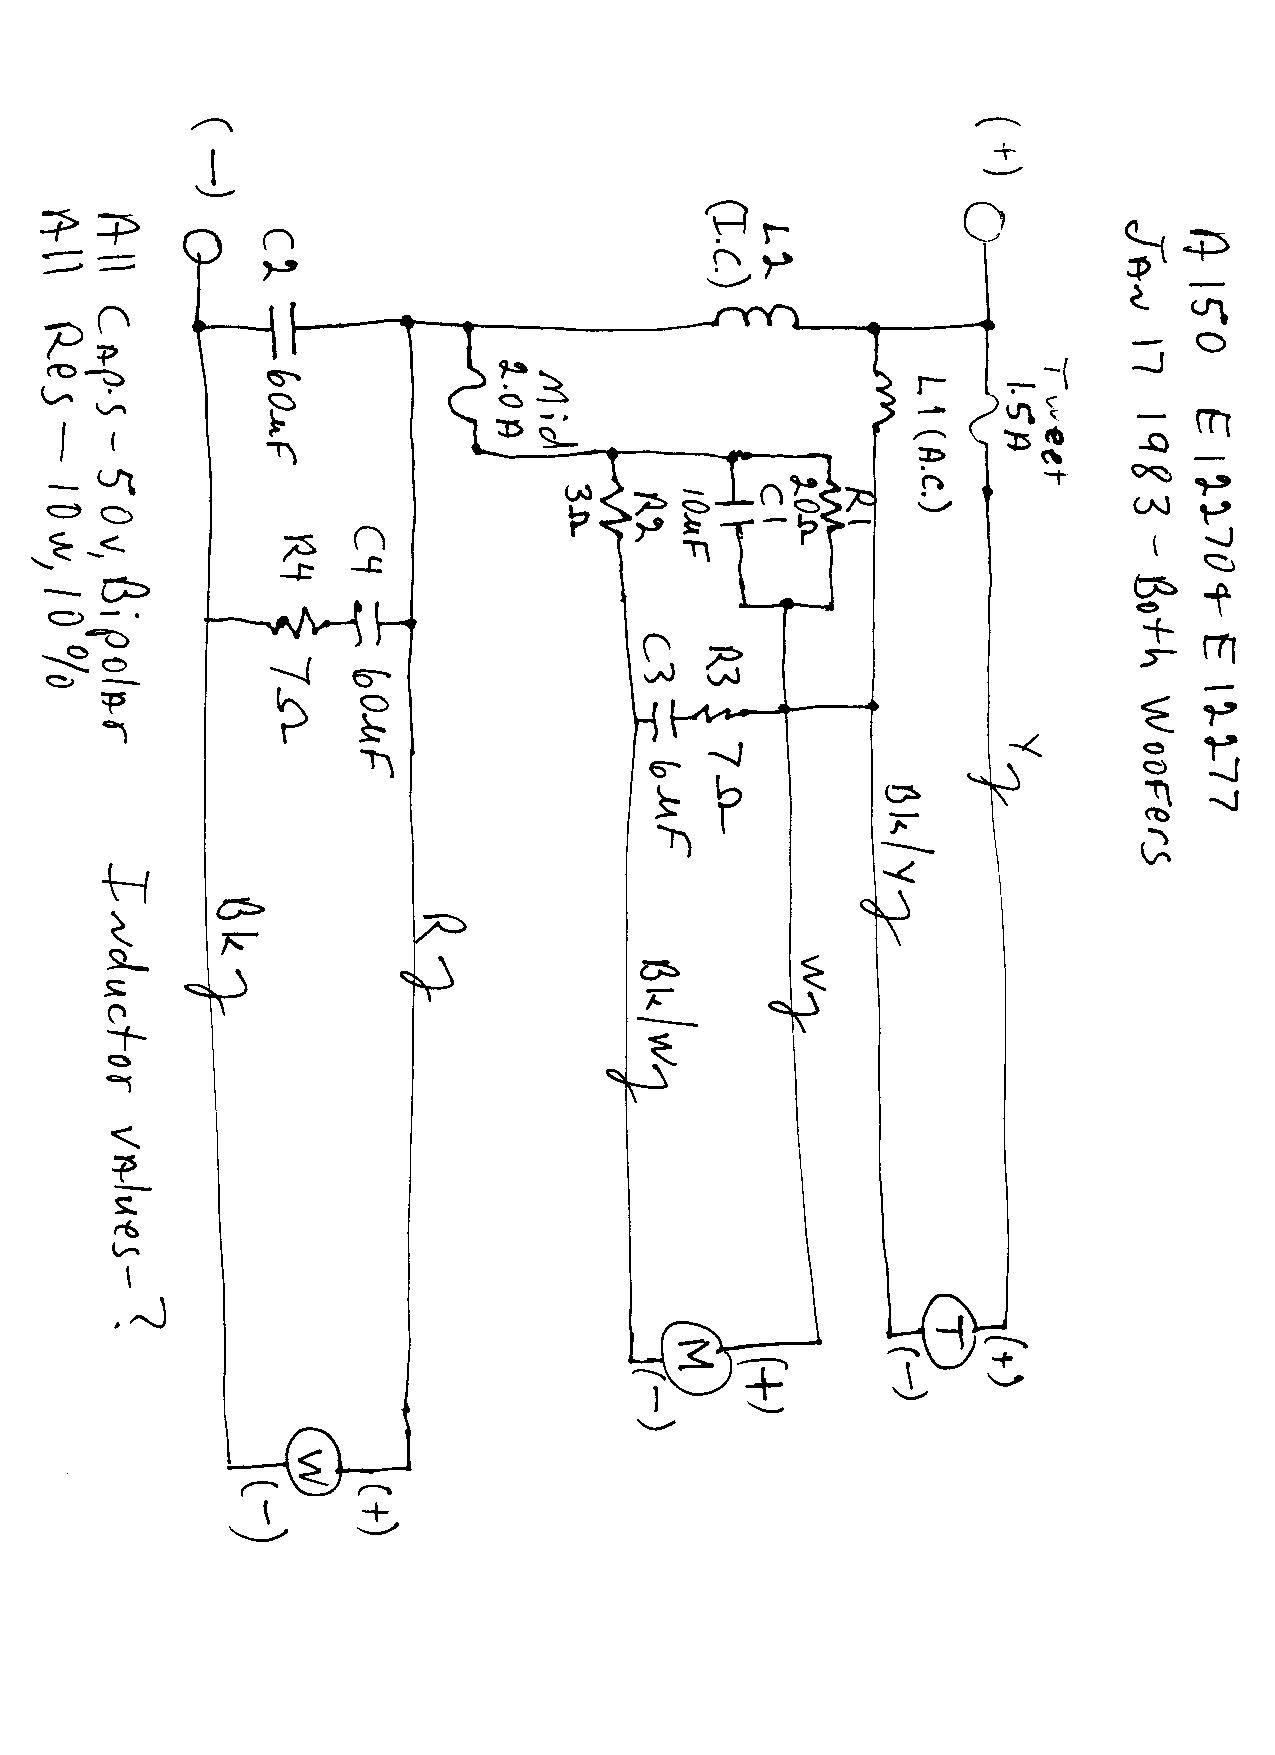 c3 wiring diagram guitar generator boston a-150 repair - acoustics the classic speaker pages discussion forums